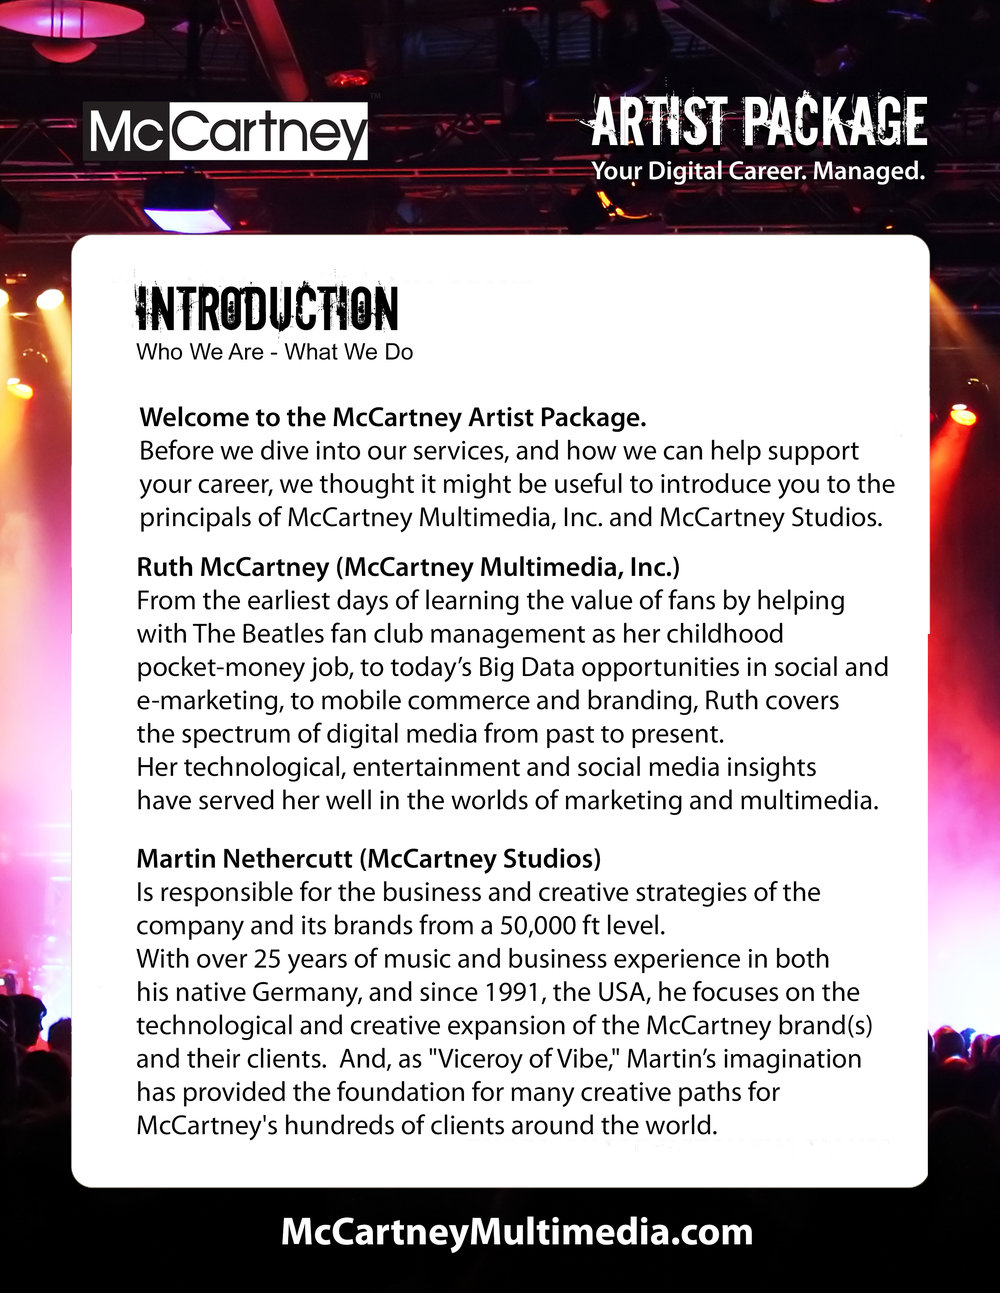 McCartney-Artist-Introduction.jpg